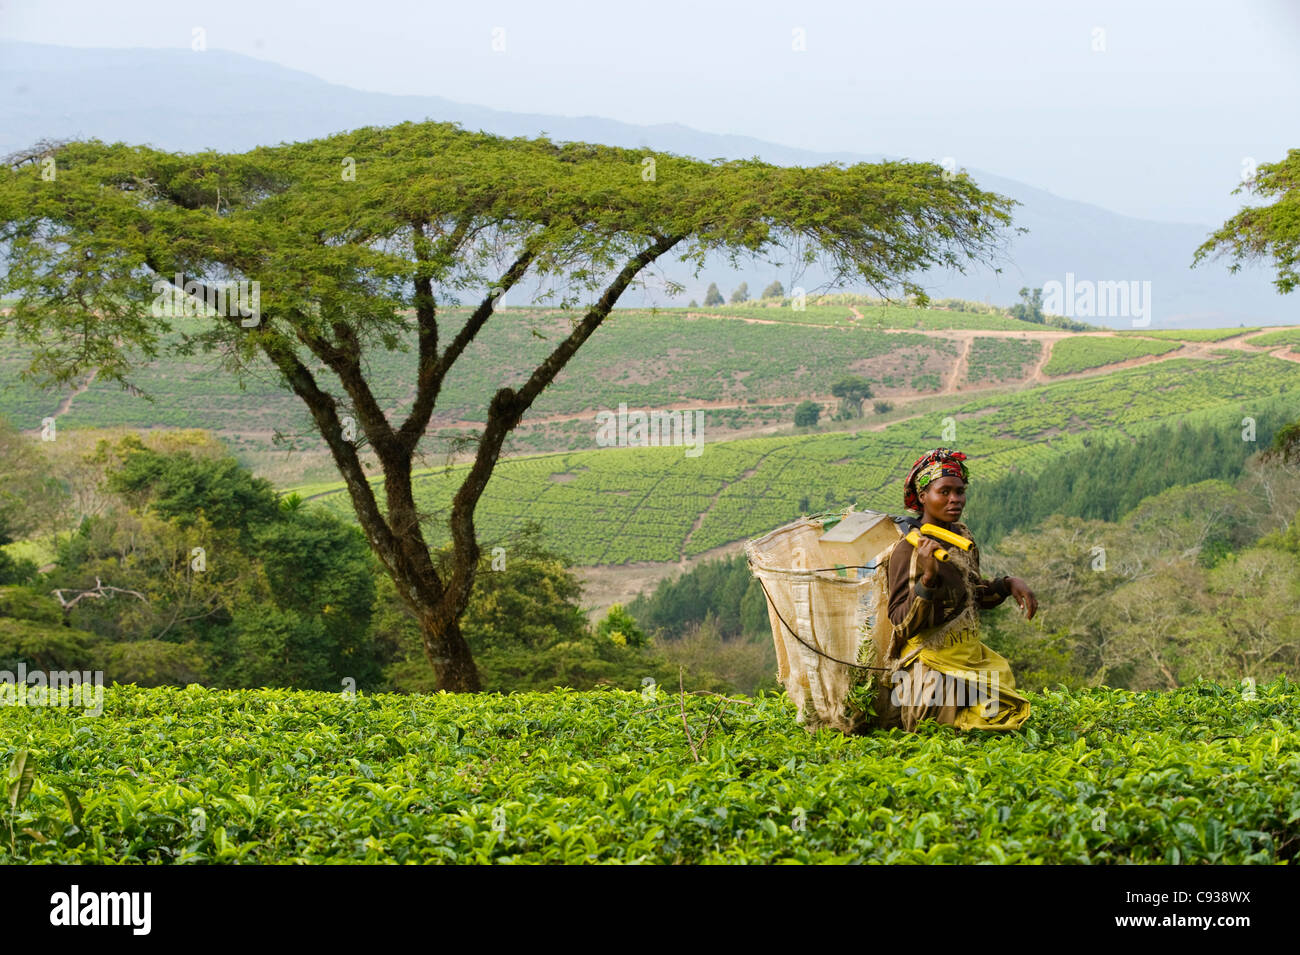 Malawi, Thyolo, Satemwa Tea Estate.  A female tea picker out plucking tea. - Stock Image